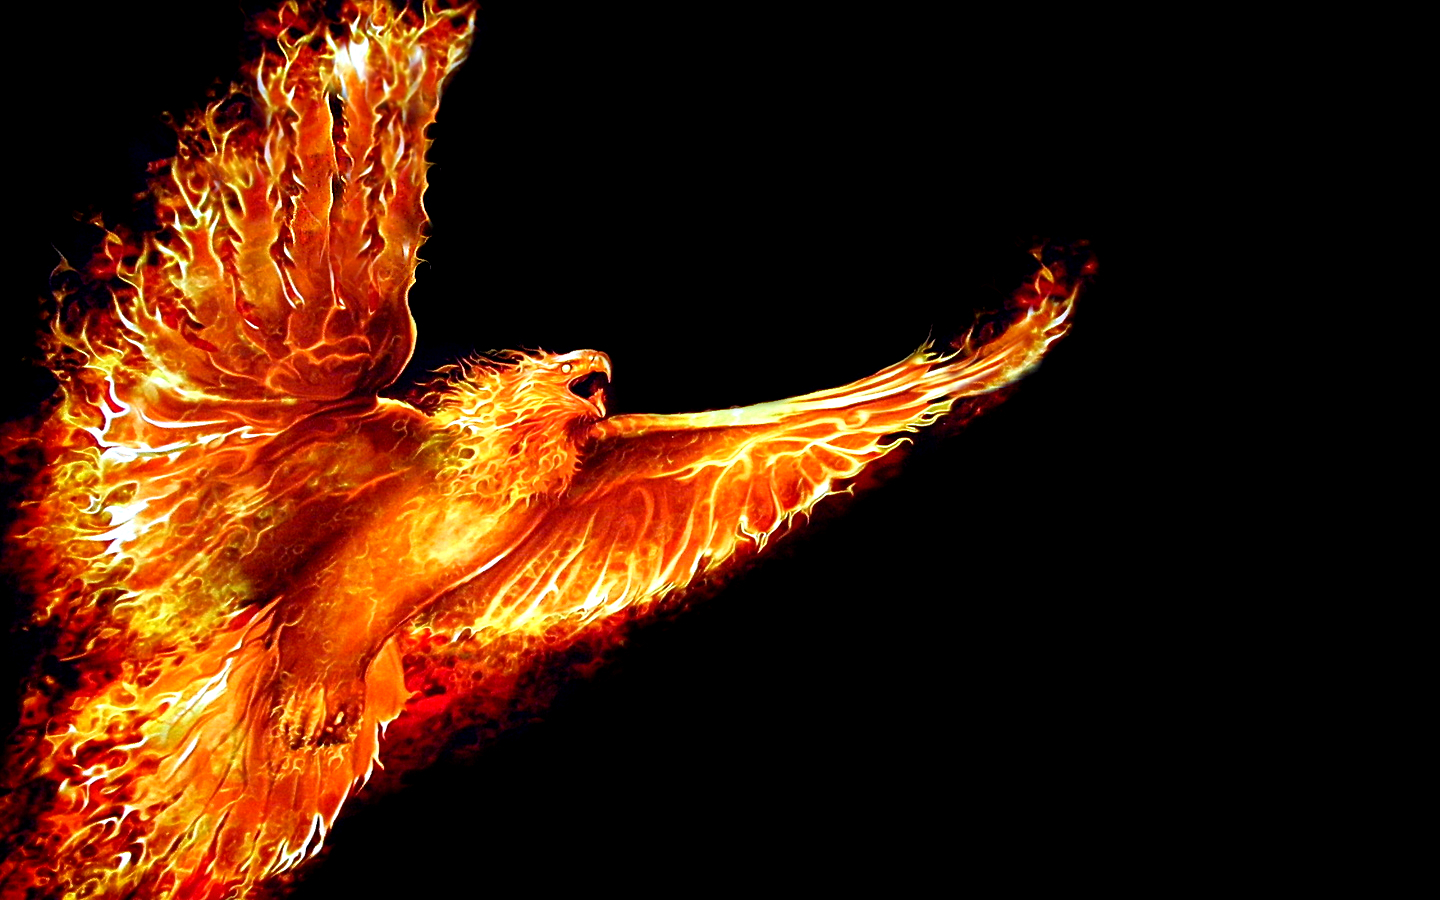 fire phoenix black background HD Wallpaper